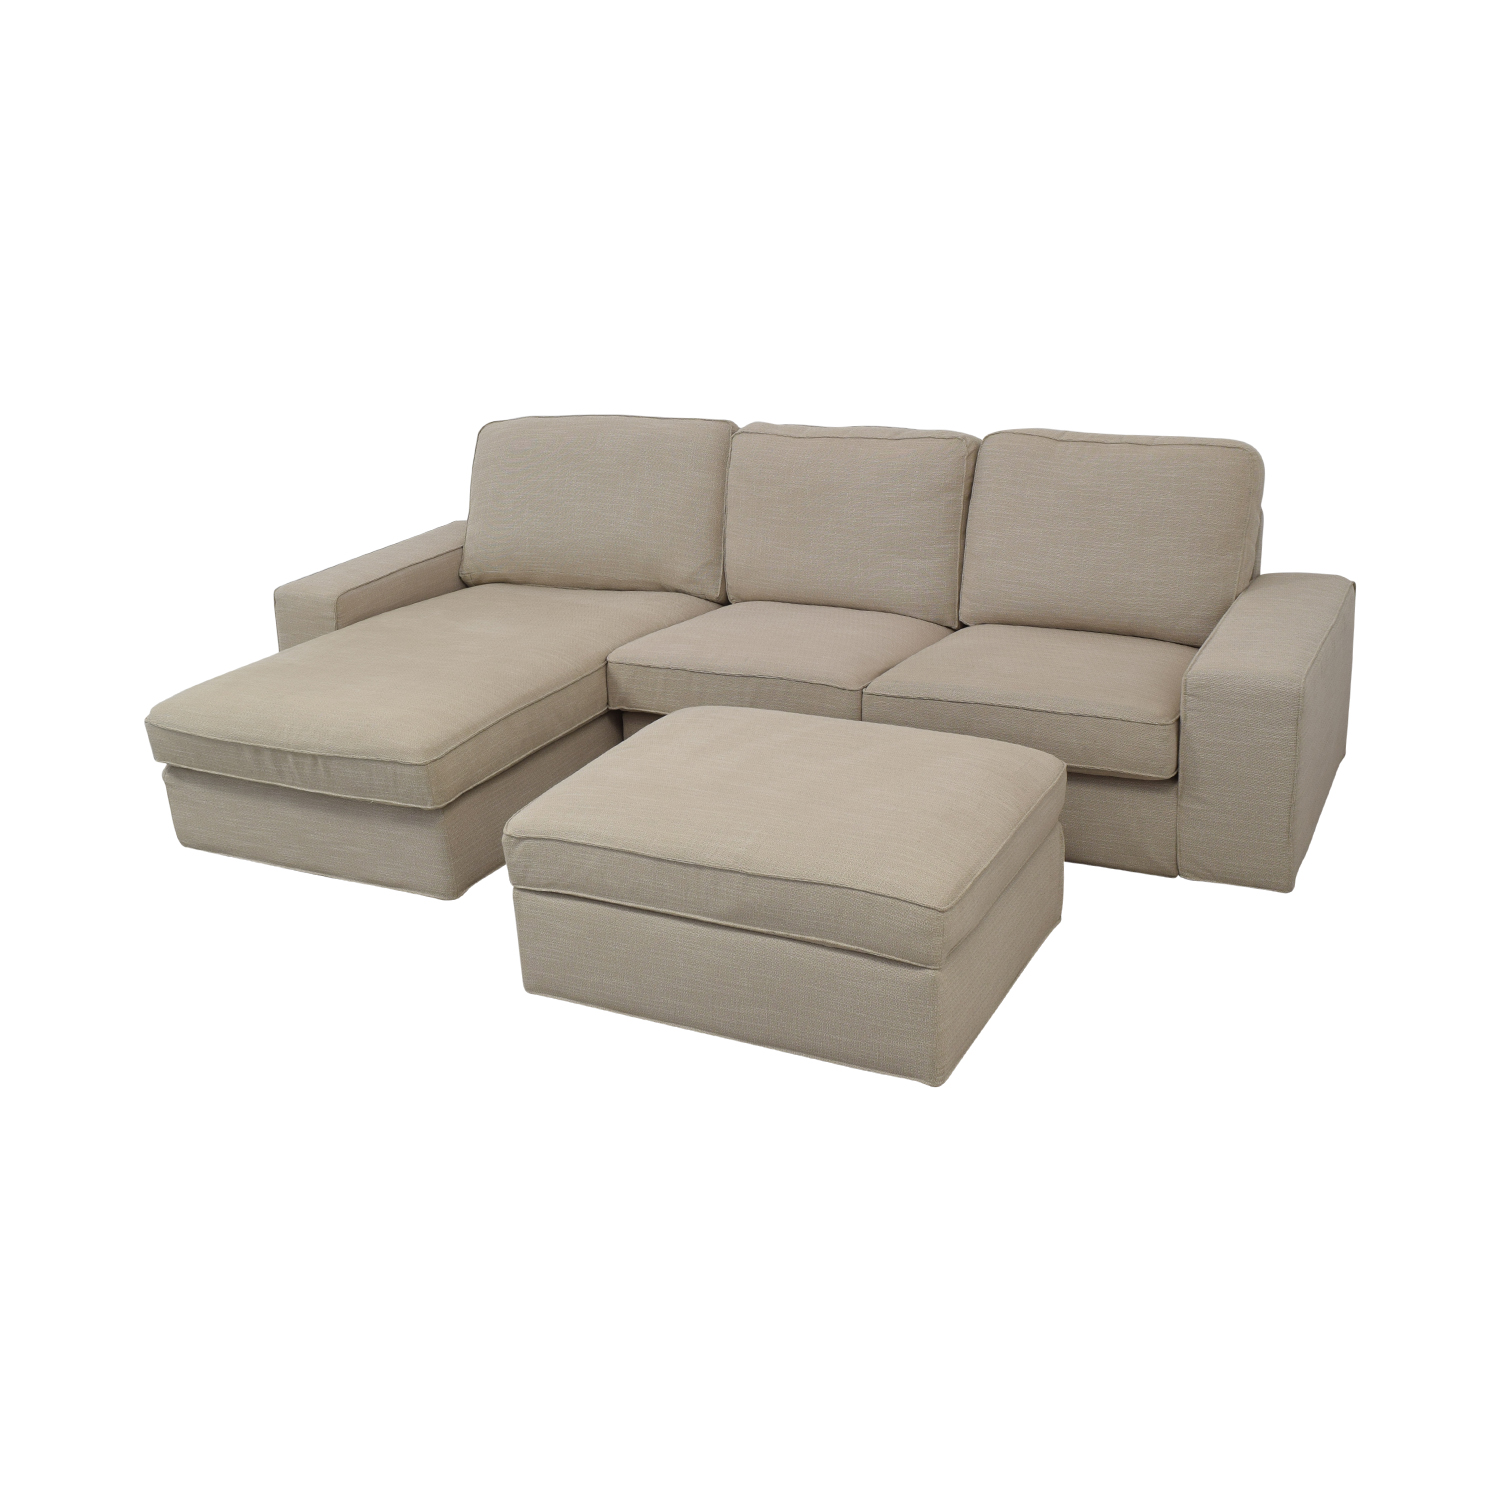 buy IKEA IKEA KIVIK Chaise Sofa with Ottoman online